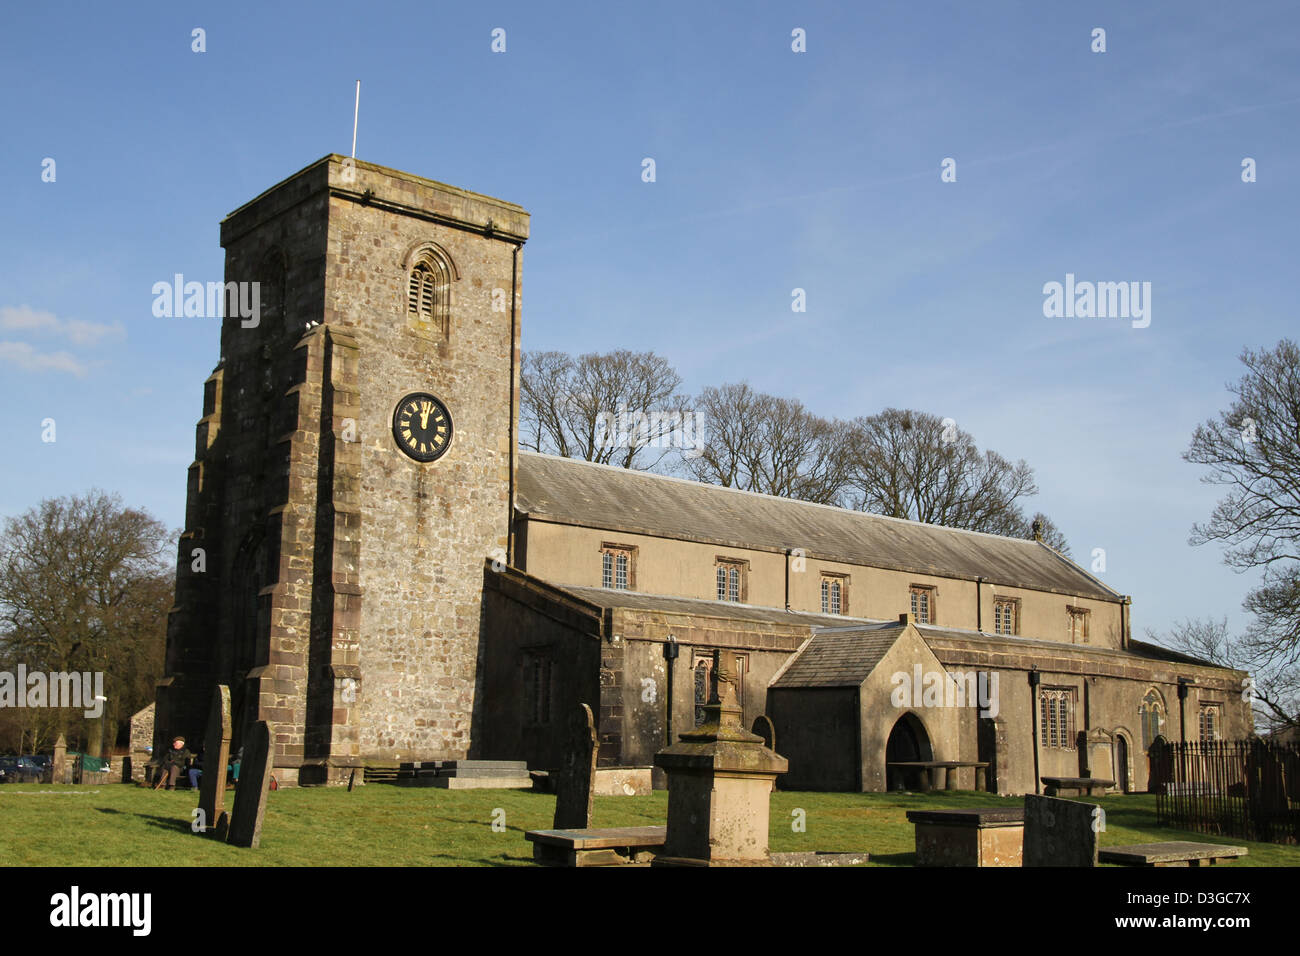 St Andrew's Church, Slaidburn, is located in Church Street, Slaidburn, Lancashire, England. Stock Photo